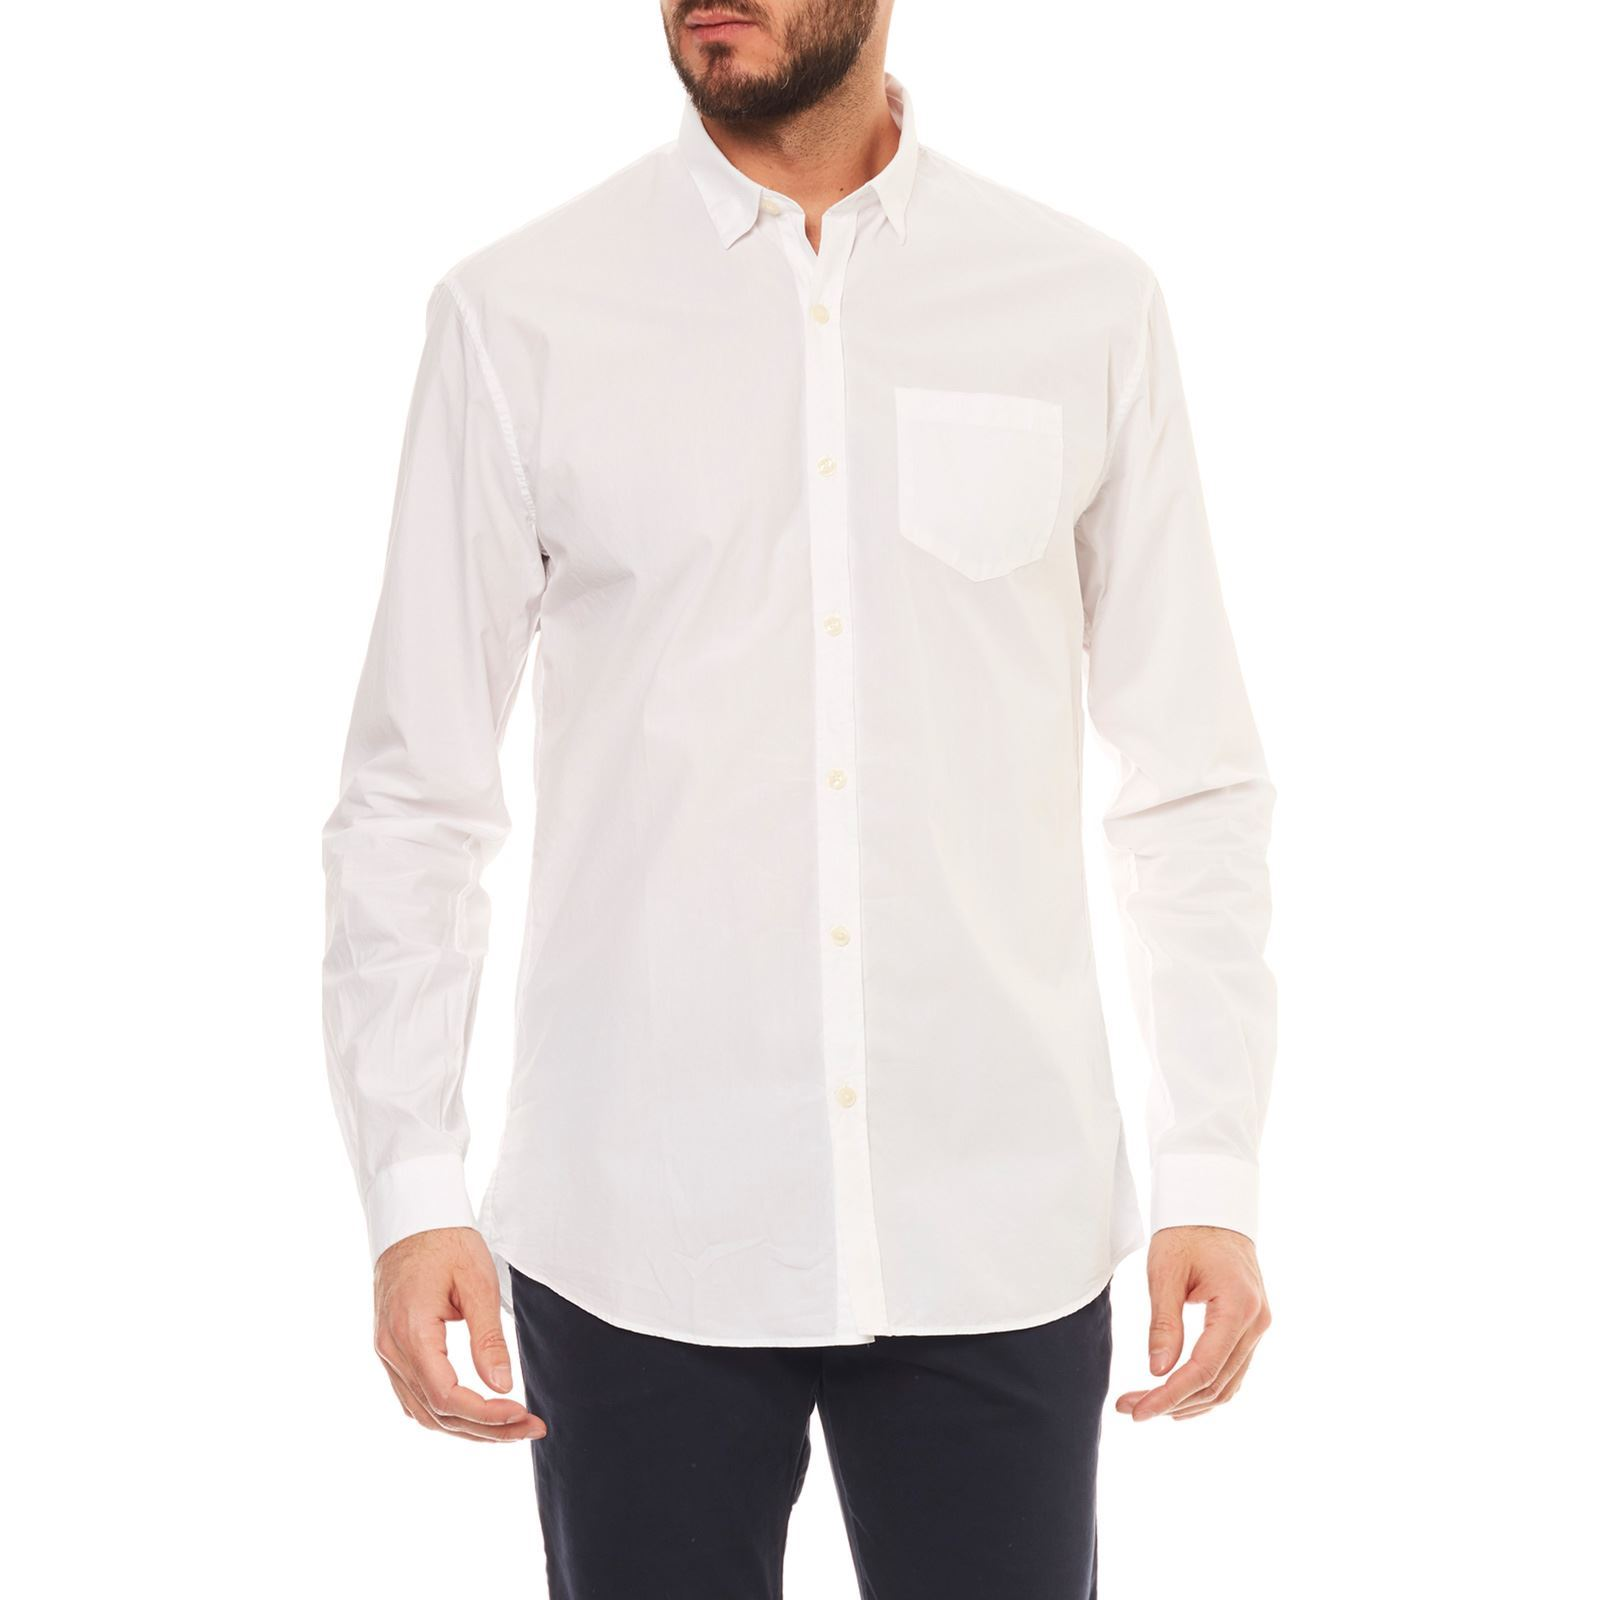 Bill Chemise Manches Blanc Tornade Longues Mariote aargx